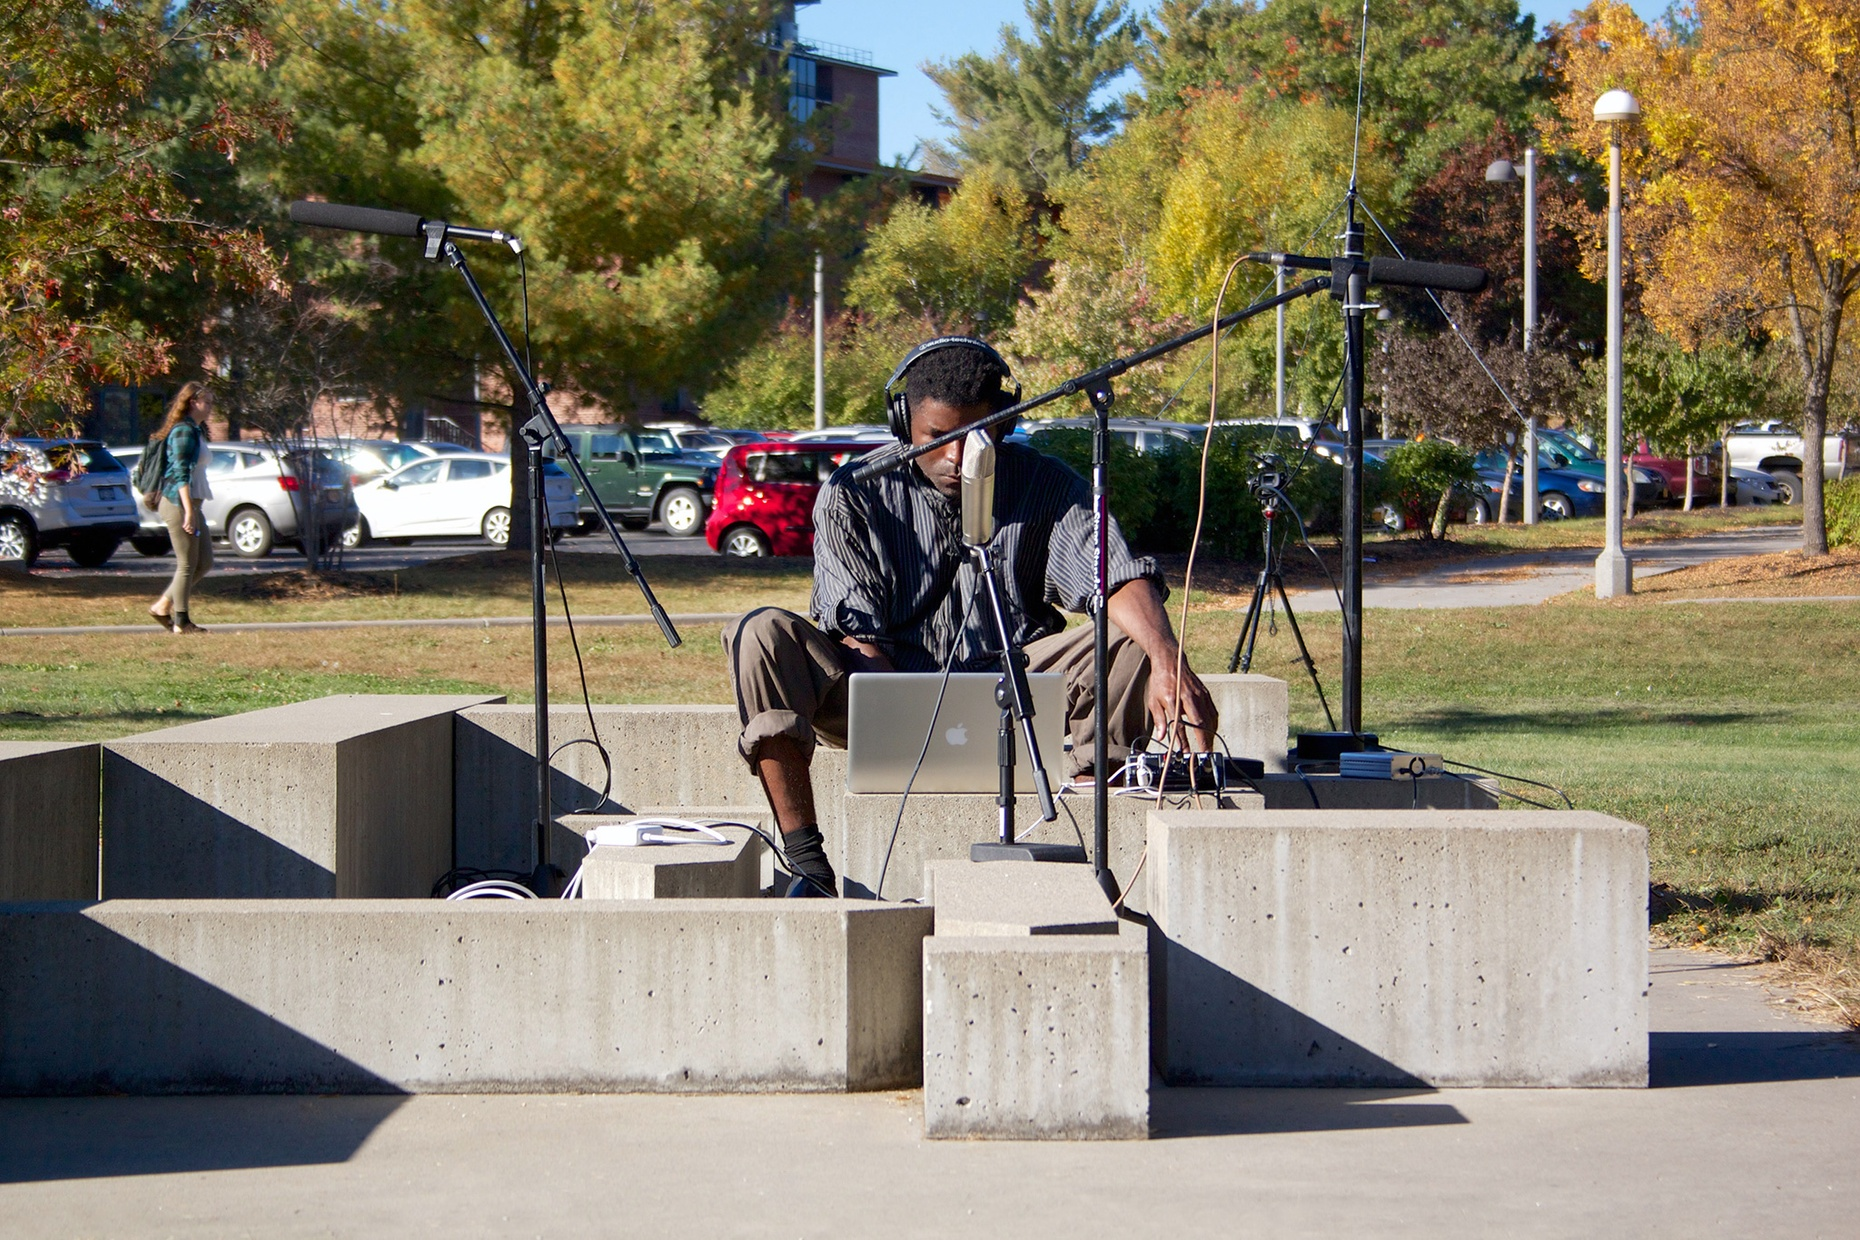 A black man sits on an outdoor sculpture made of concrete blocks with a laptop and two mics on stands.